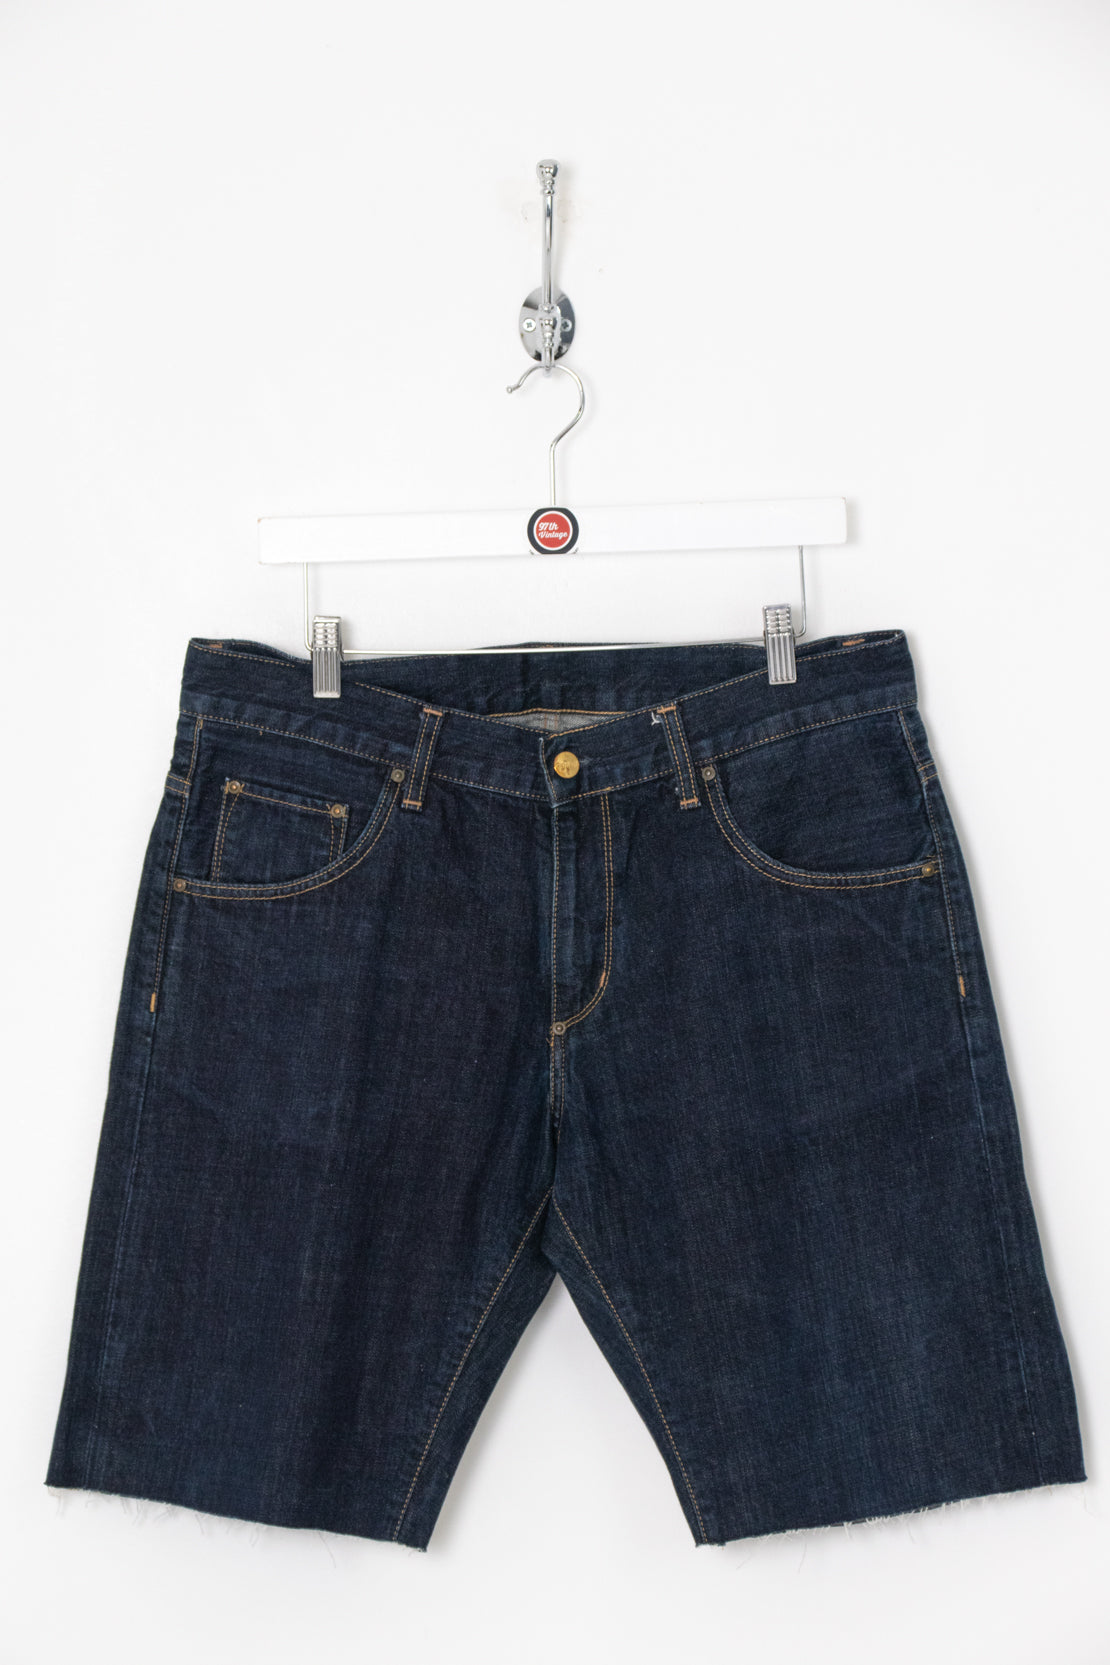 Carhartt Denim Shorts (32